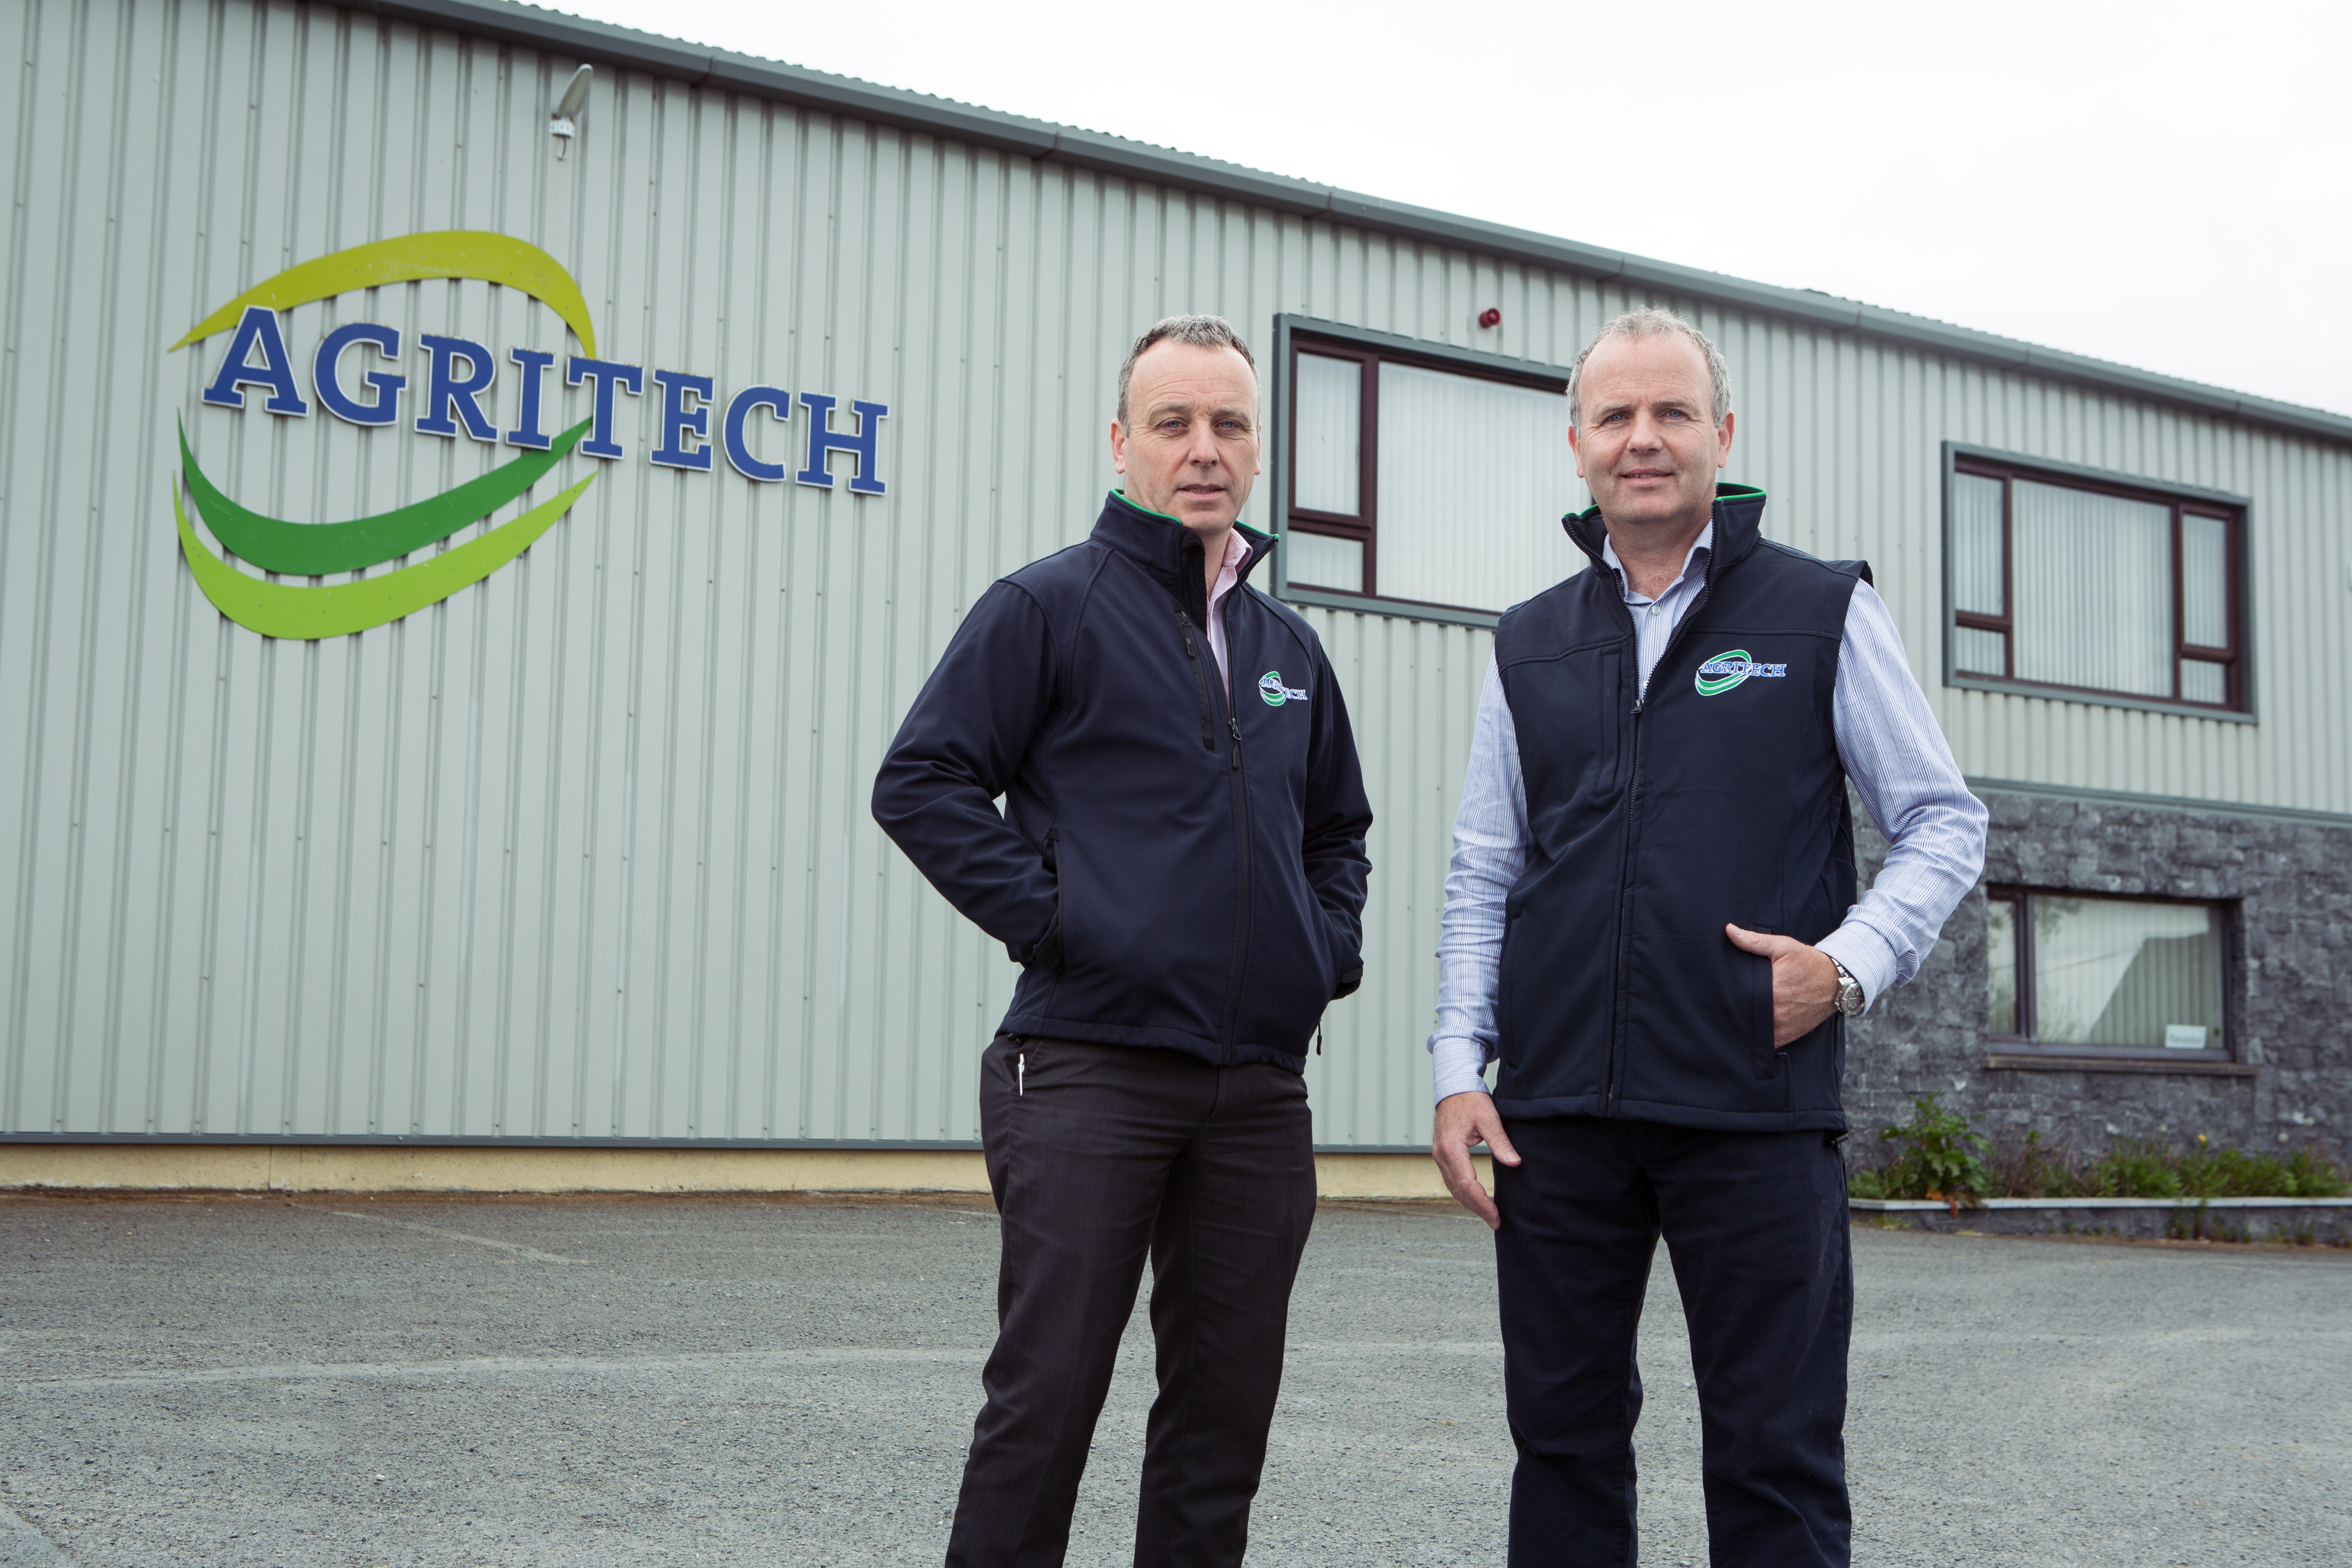 Brian and Seamus O' Slatarra at Agritech, Nenagh, following installation of 184 Photovoltaic panels.